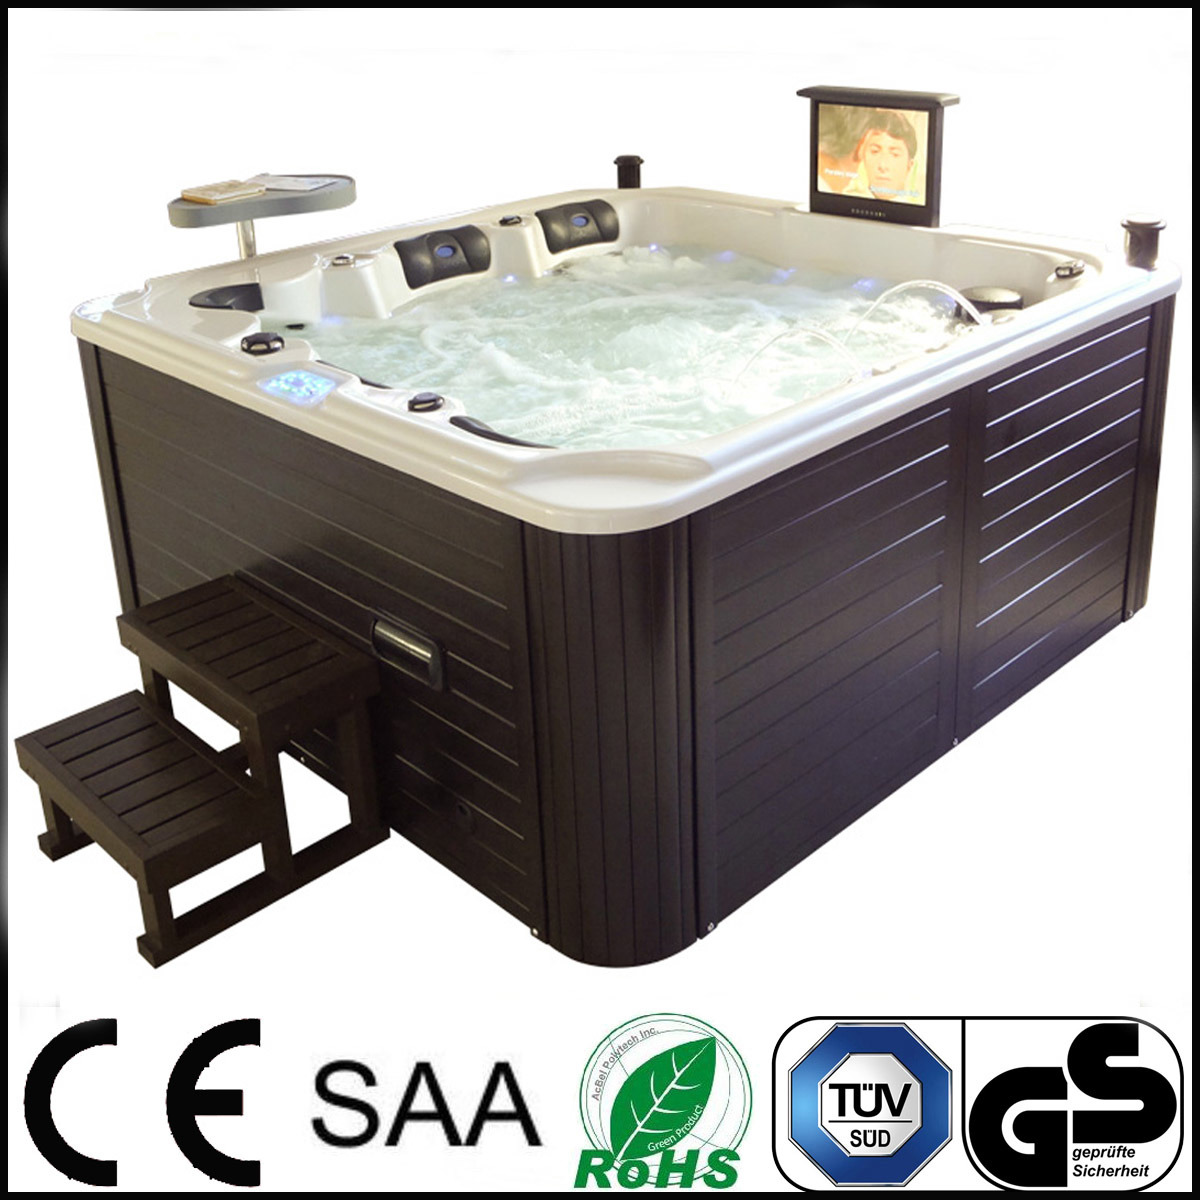 china deluxe tv hot spring hot tub balboa outdoor spa bathtub china hot spring outdoor spa. Black Bedroom Furniture Sets. Home Design Ideas